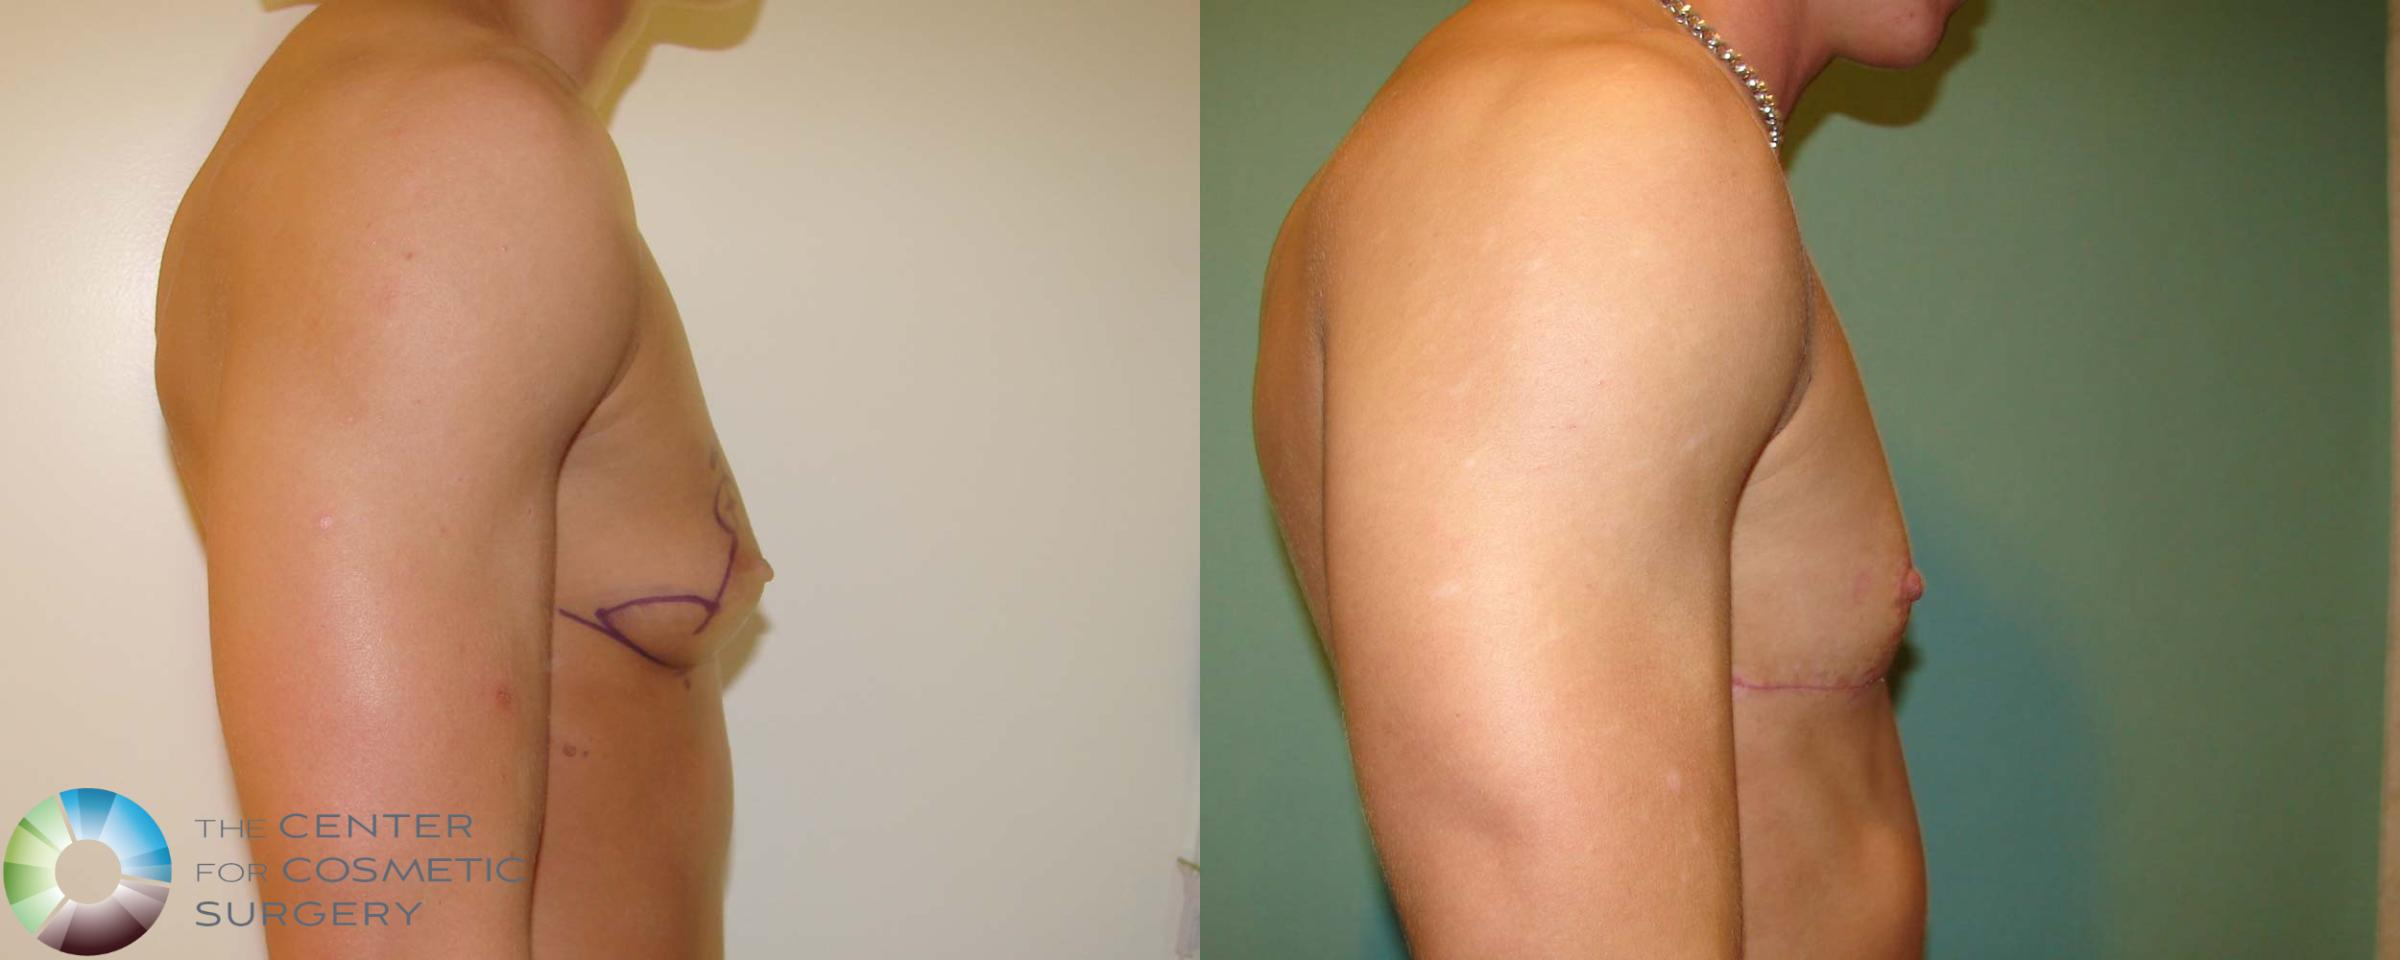 FTM Top Surgery/Chest Masculinization Case 672 Before & After View #3 | Golden, CO | The Center for Cosmetic Surgery